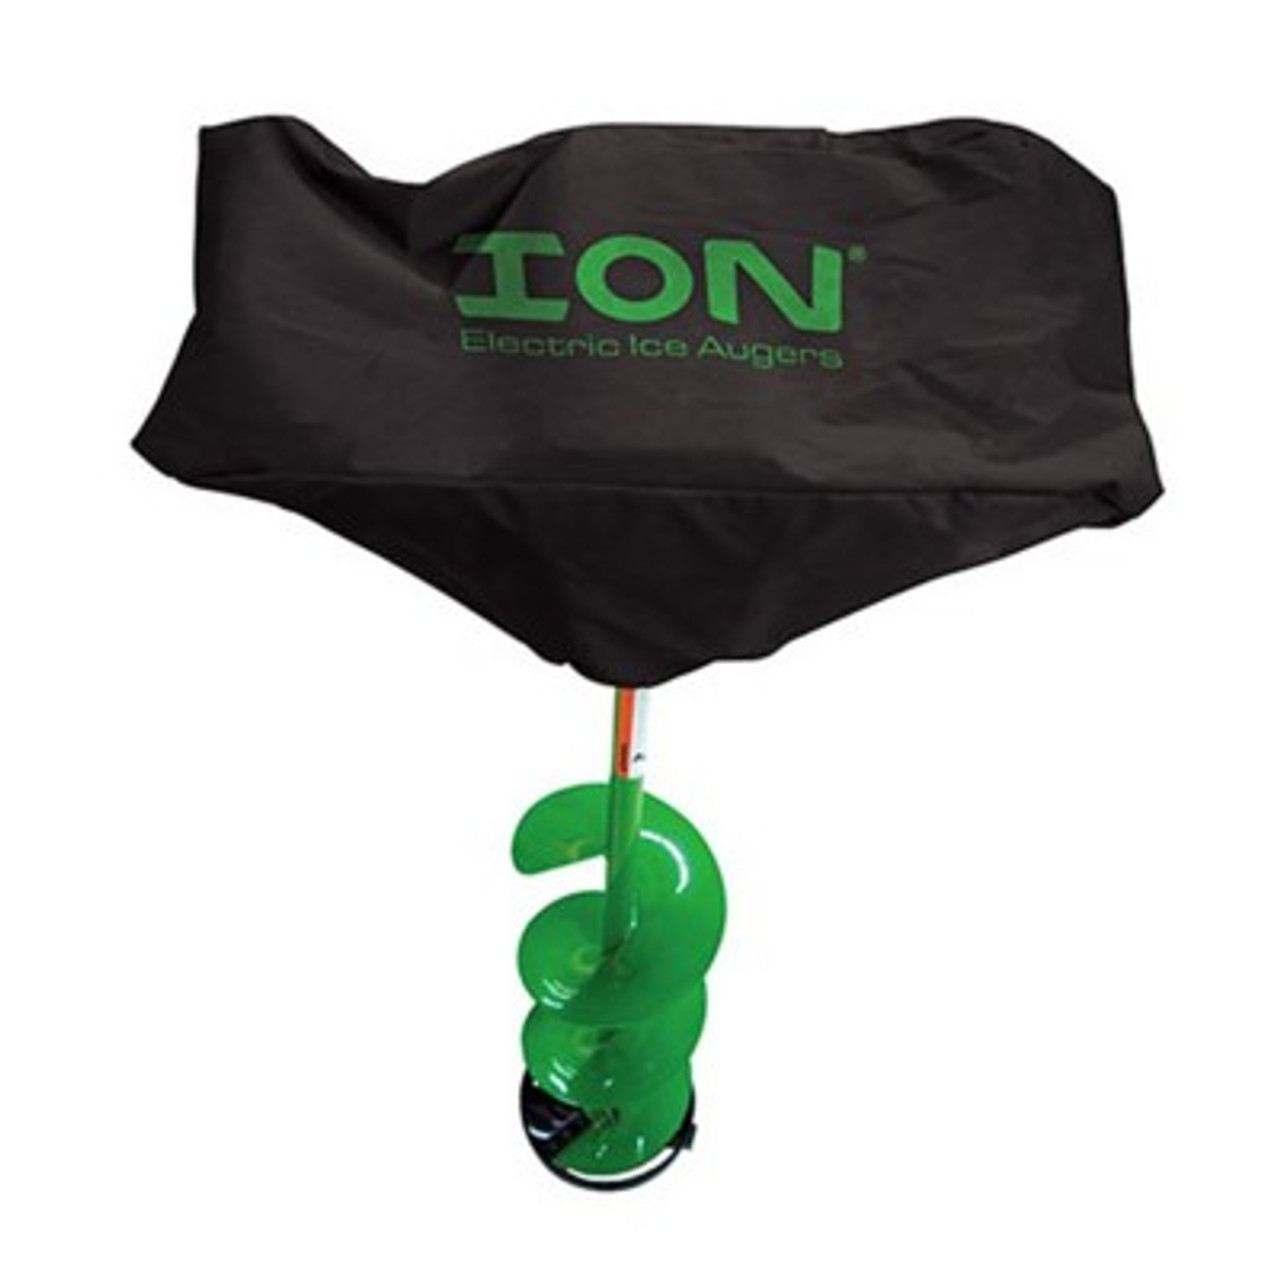 ION Covers Power Head from Dust and debris!